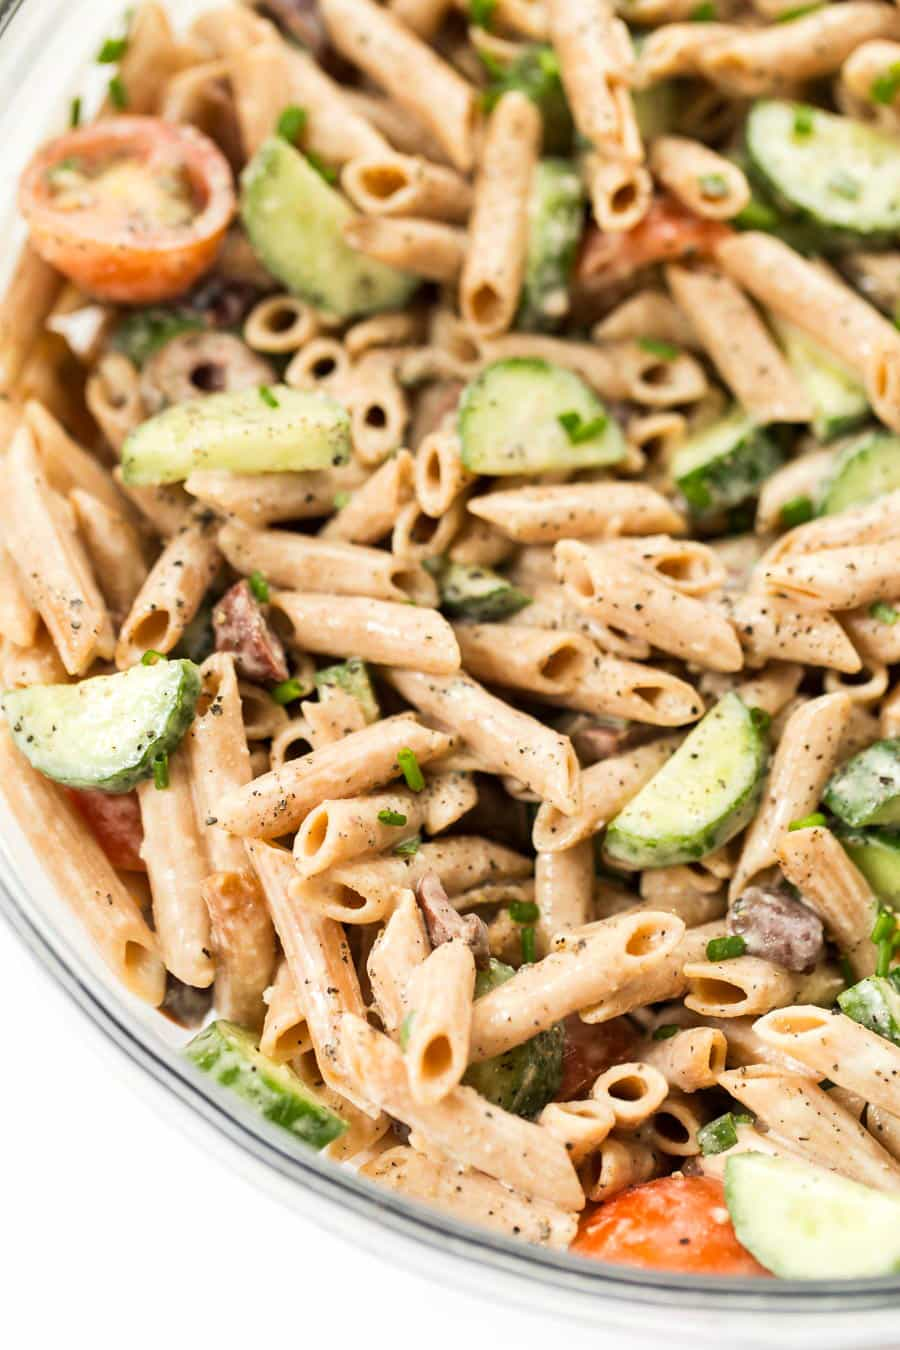 Looking for a healthy pasta salad to make? Try this Creamy Mediterranean Pasta Salad! It's made with veggies and tossed in a healthy creamy sauce!